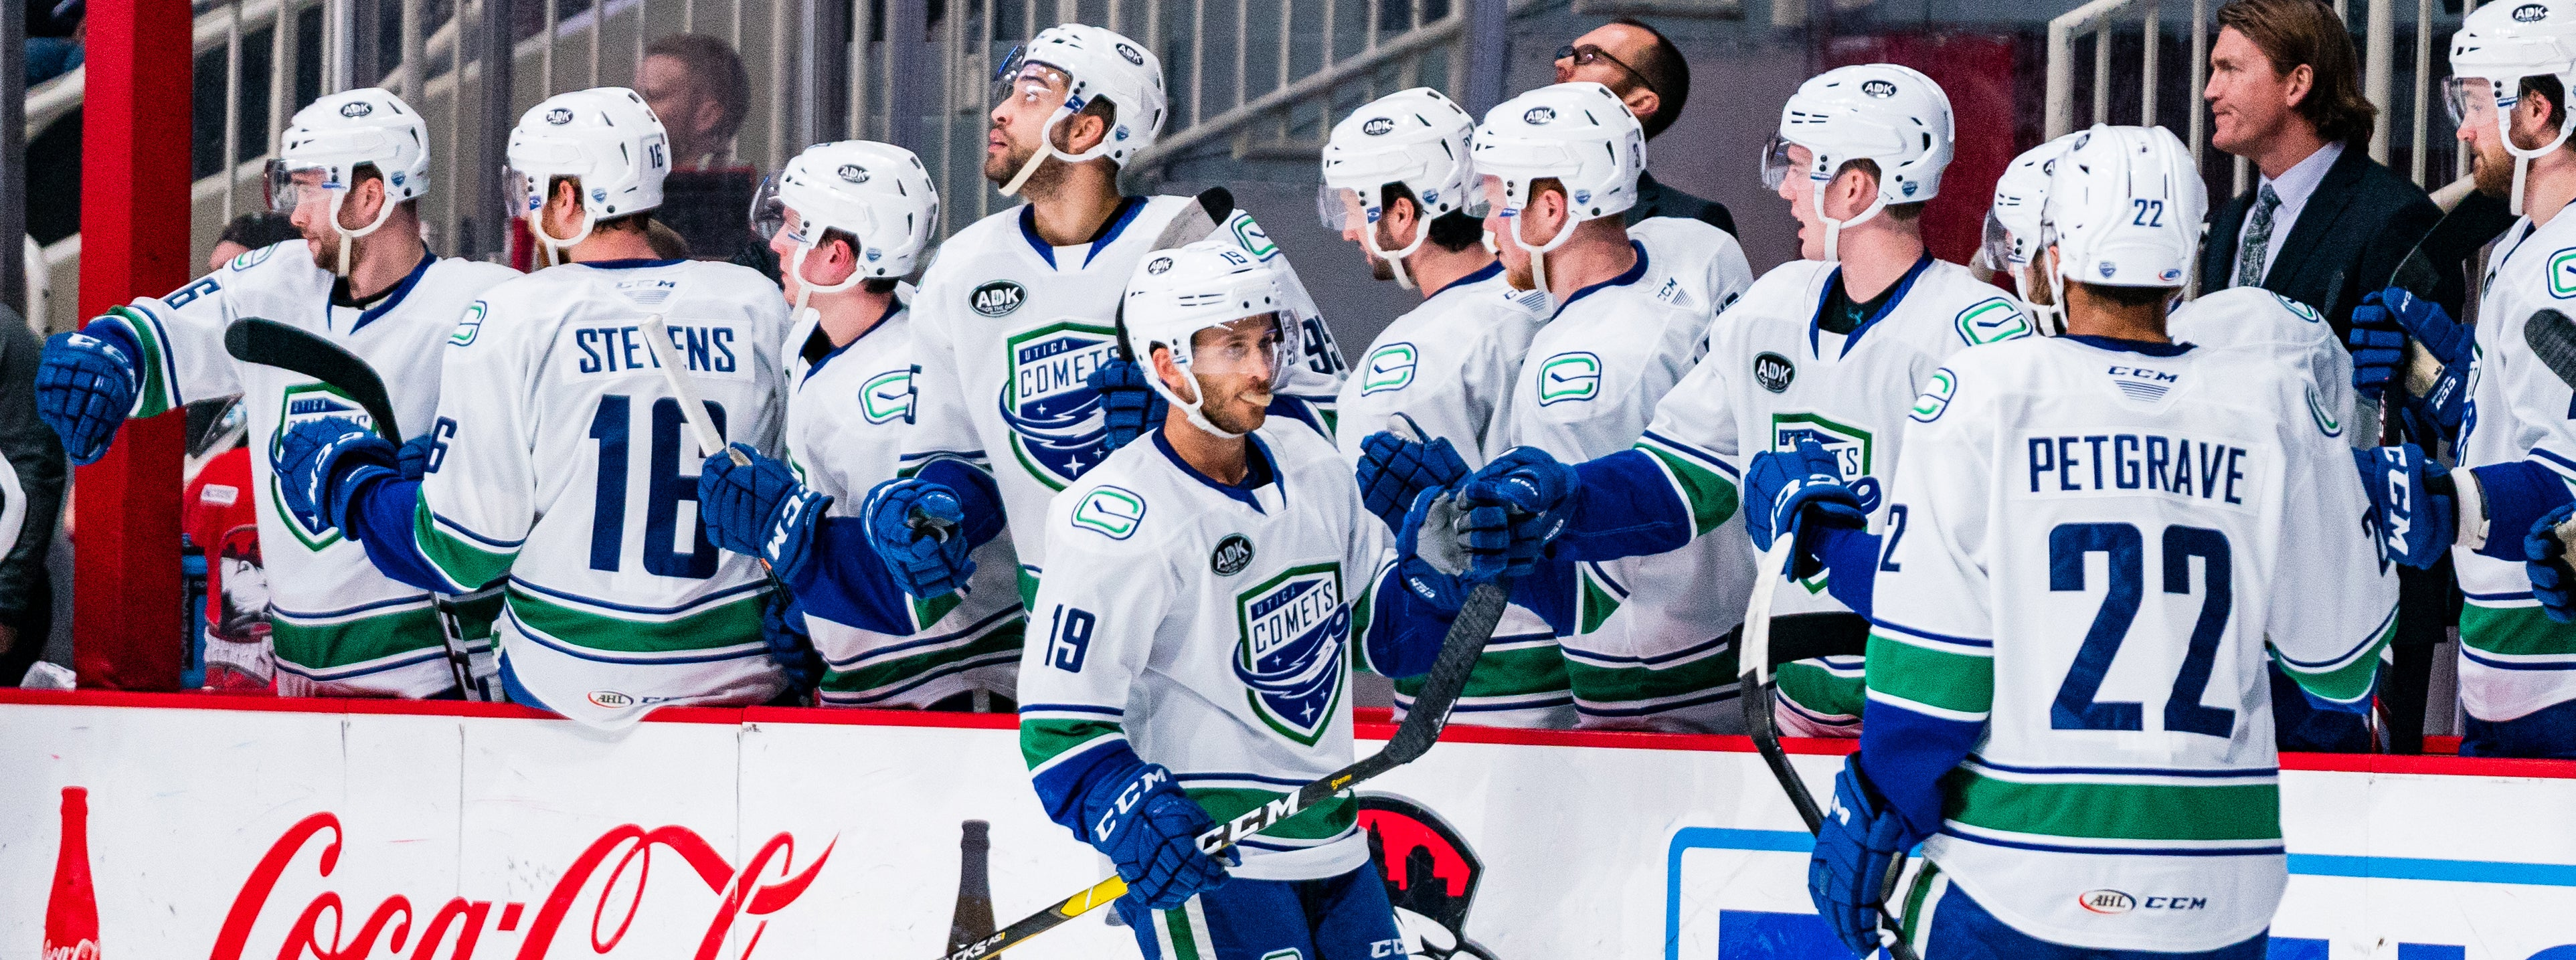 BOUCHER EARNS ANOTHER RECORD AS COMETS TOP CHECKERS